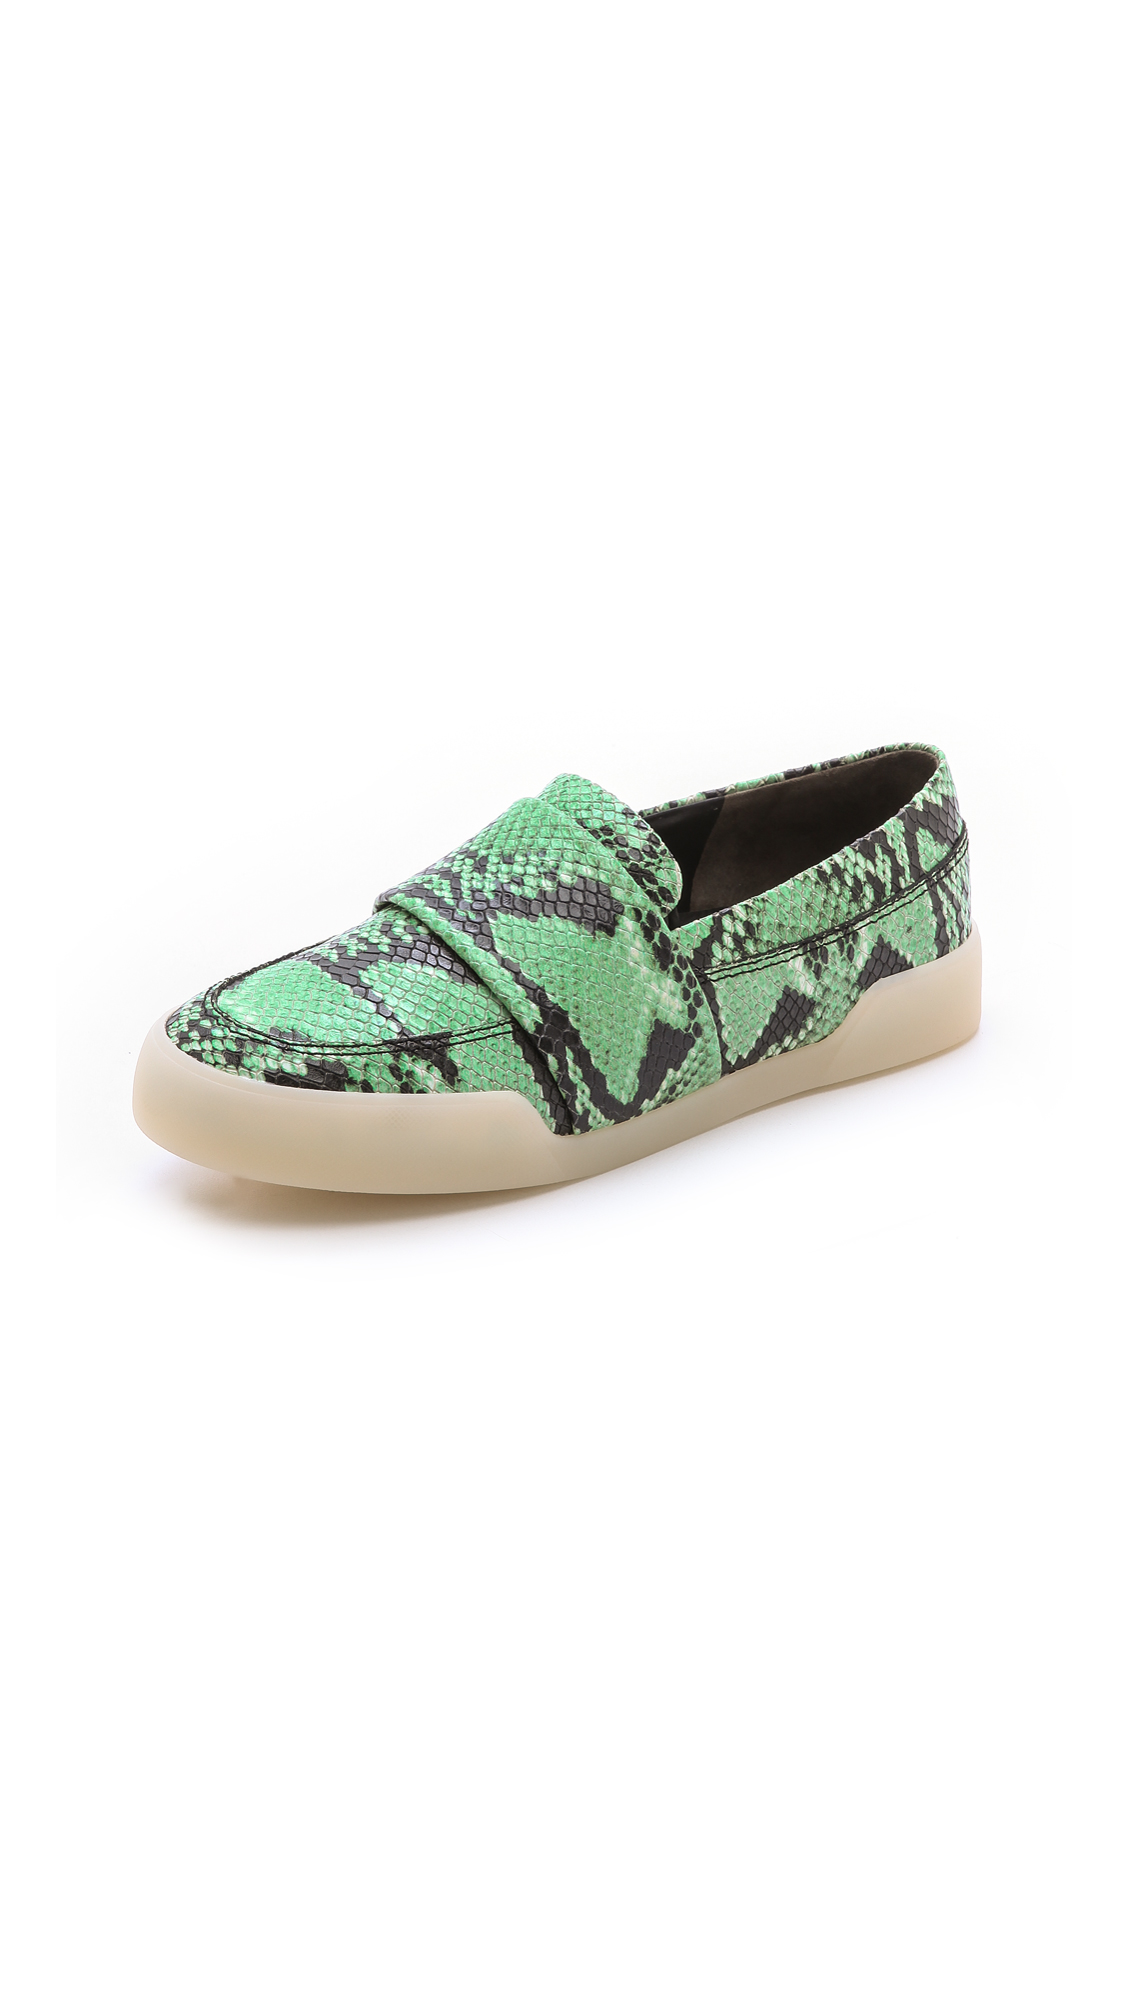 3.1 Phillip Lim Morgan Snake-Effect Leather Slip-On Sneakers In Green